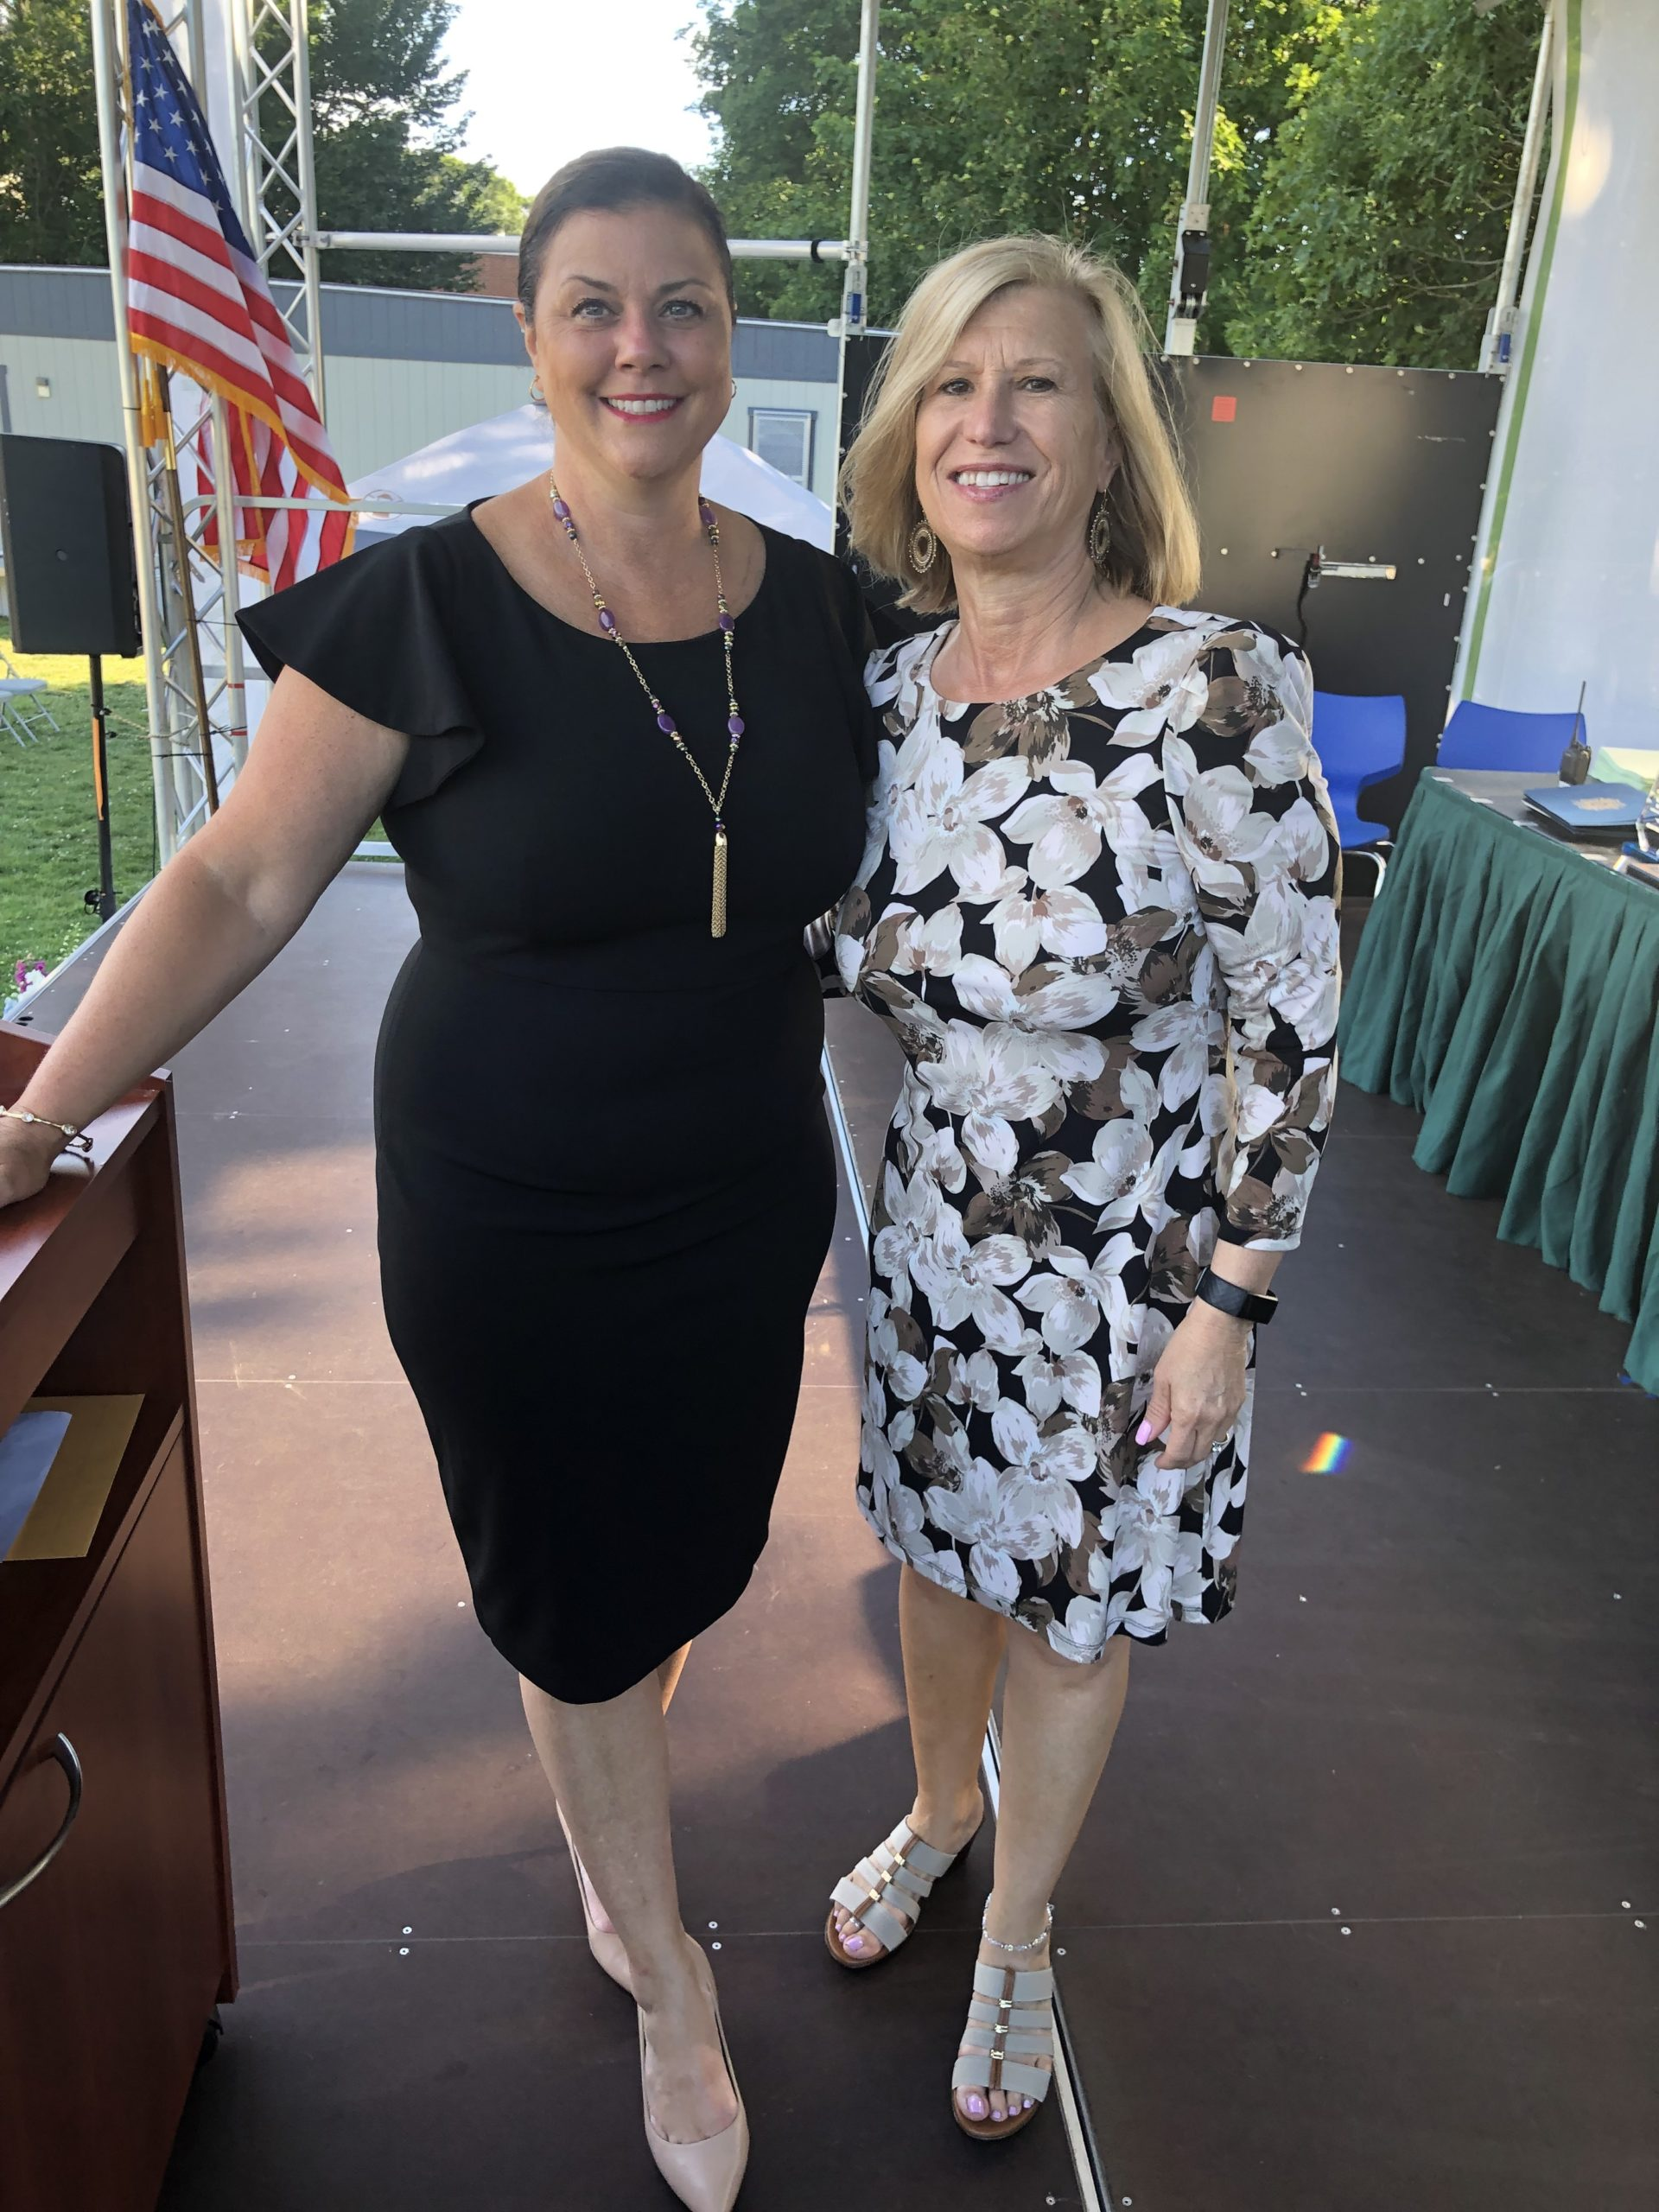 Springs School Principal Christine Cleary and Superintendent Deborah Winter at the ceremony.